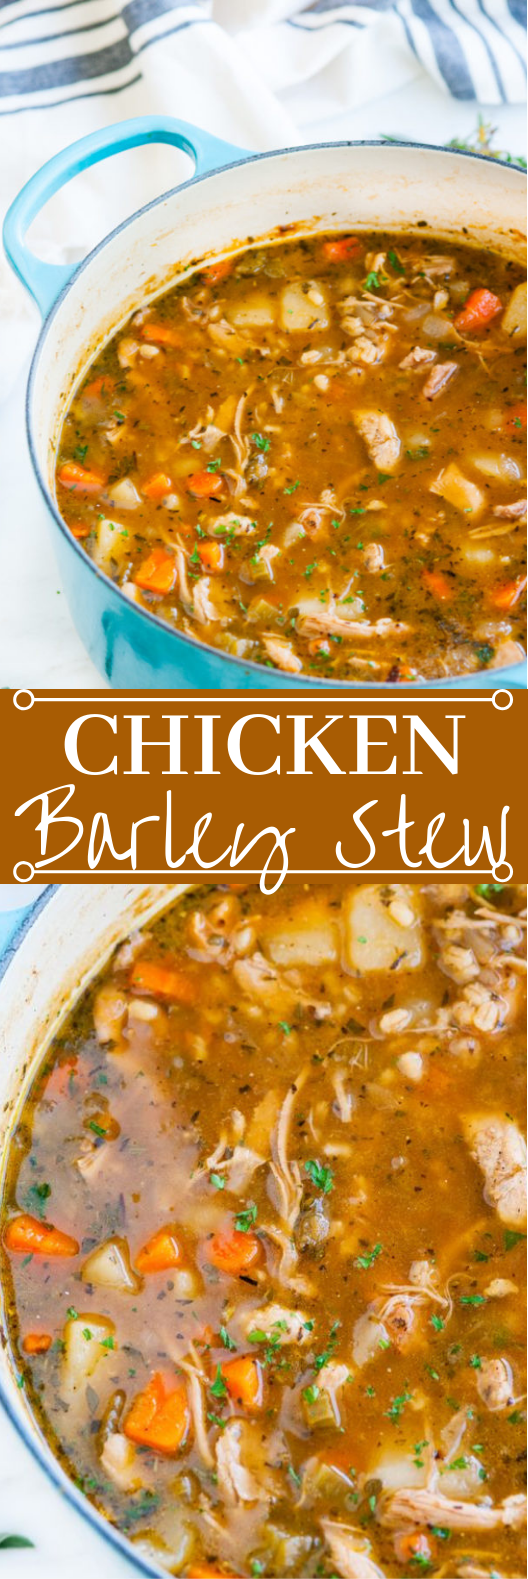 Chicken and Barley Stew #dinner #stew